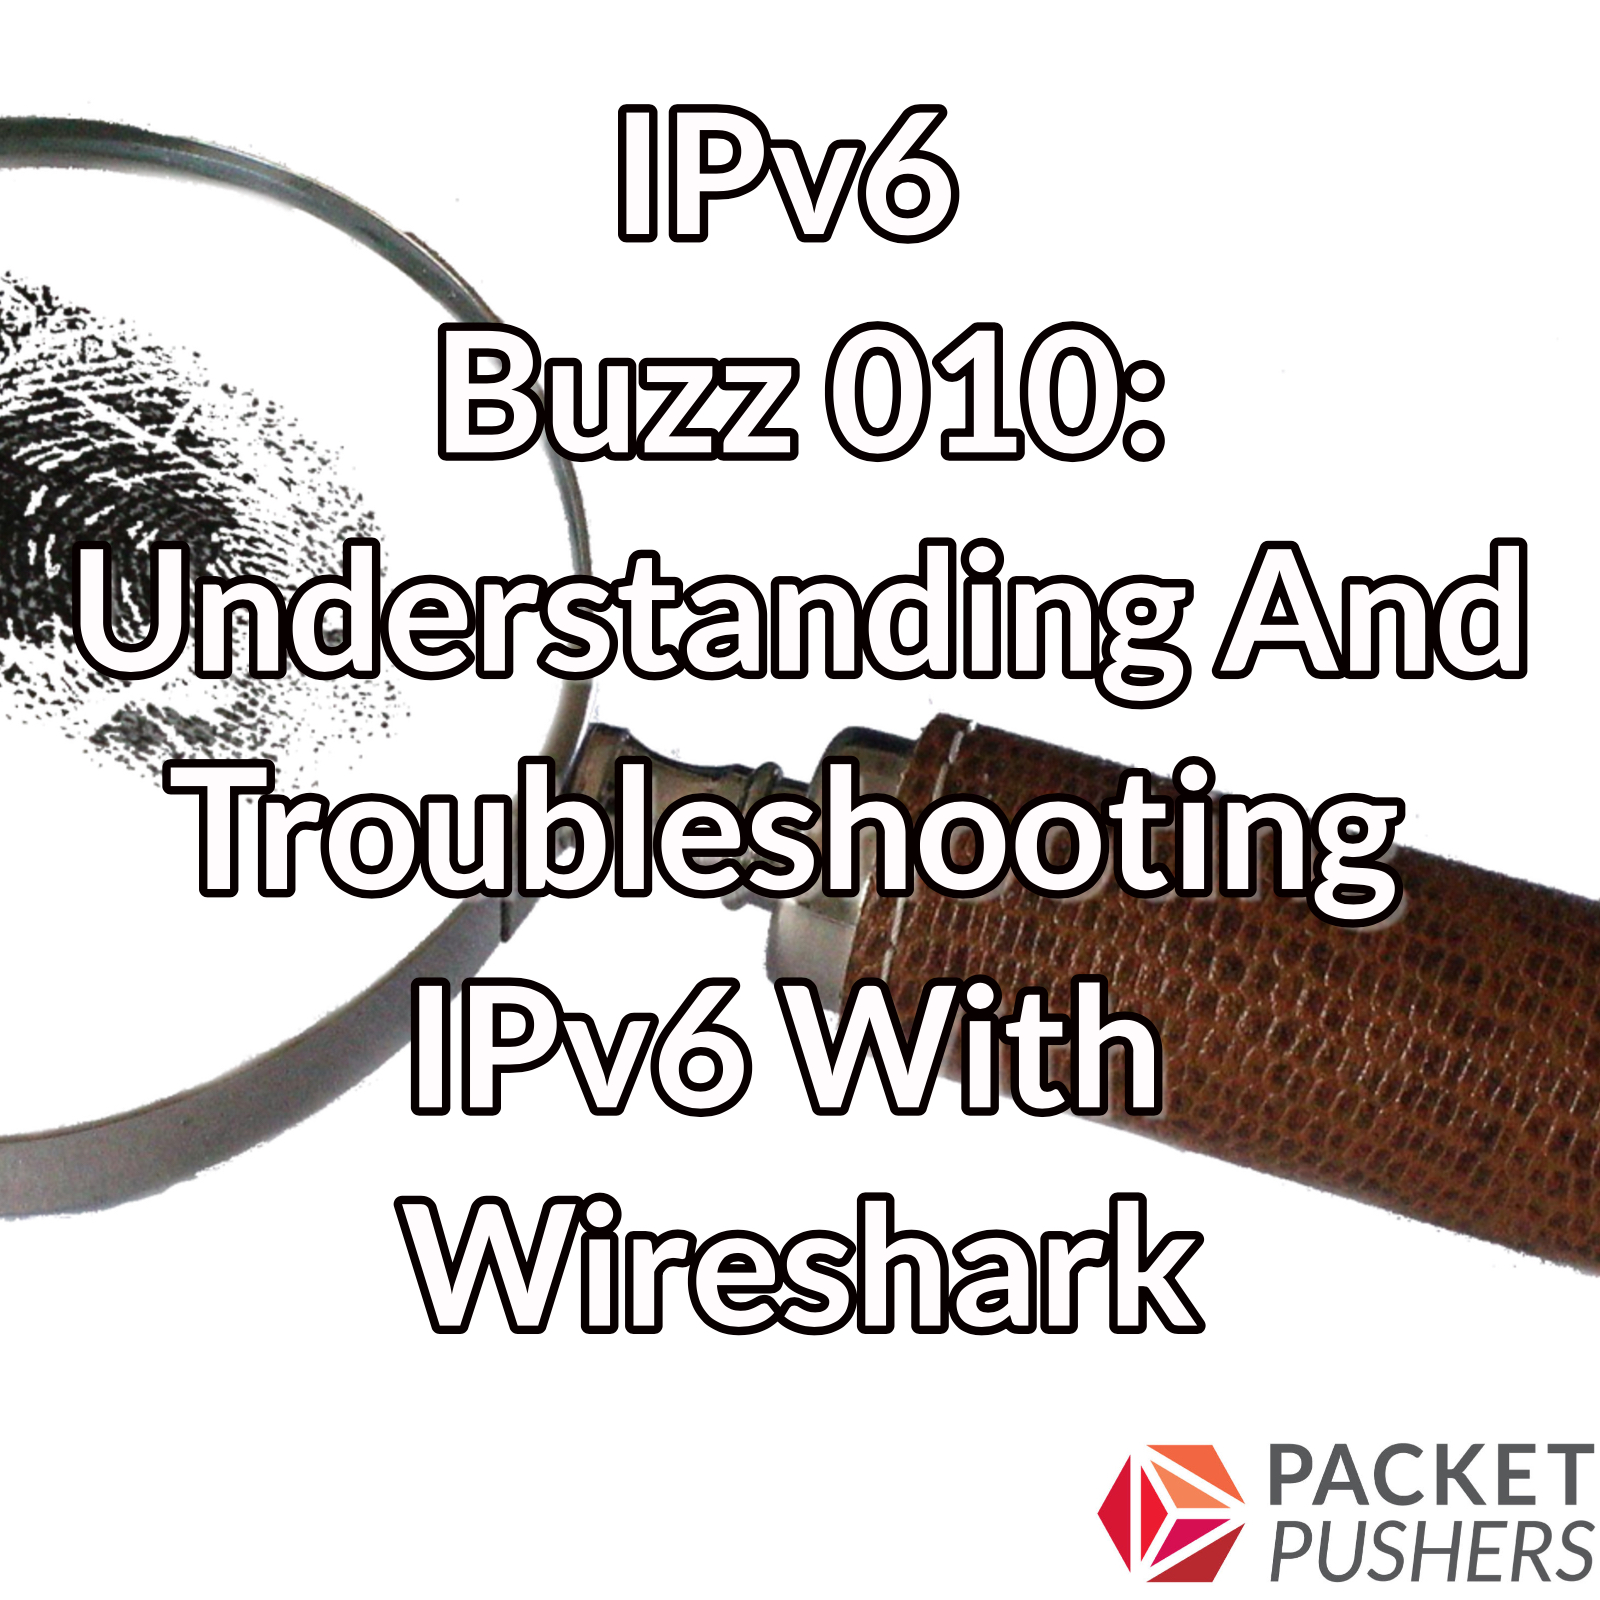 Understanding and troubleshooting IPv6